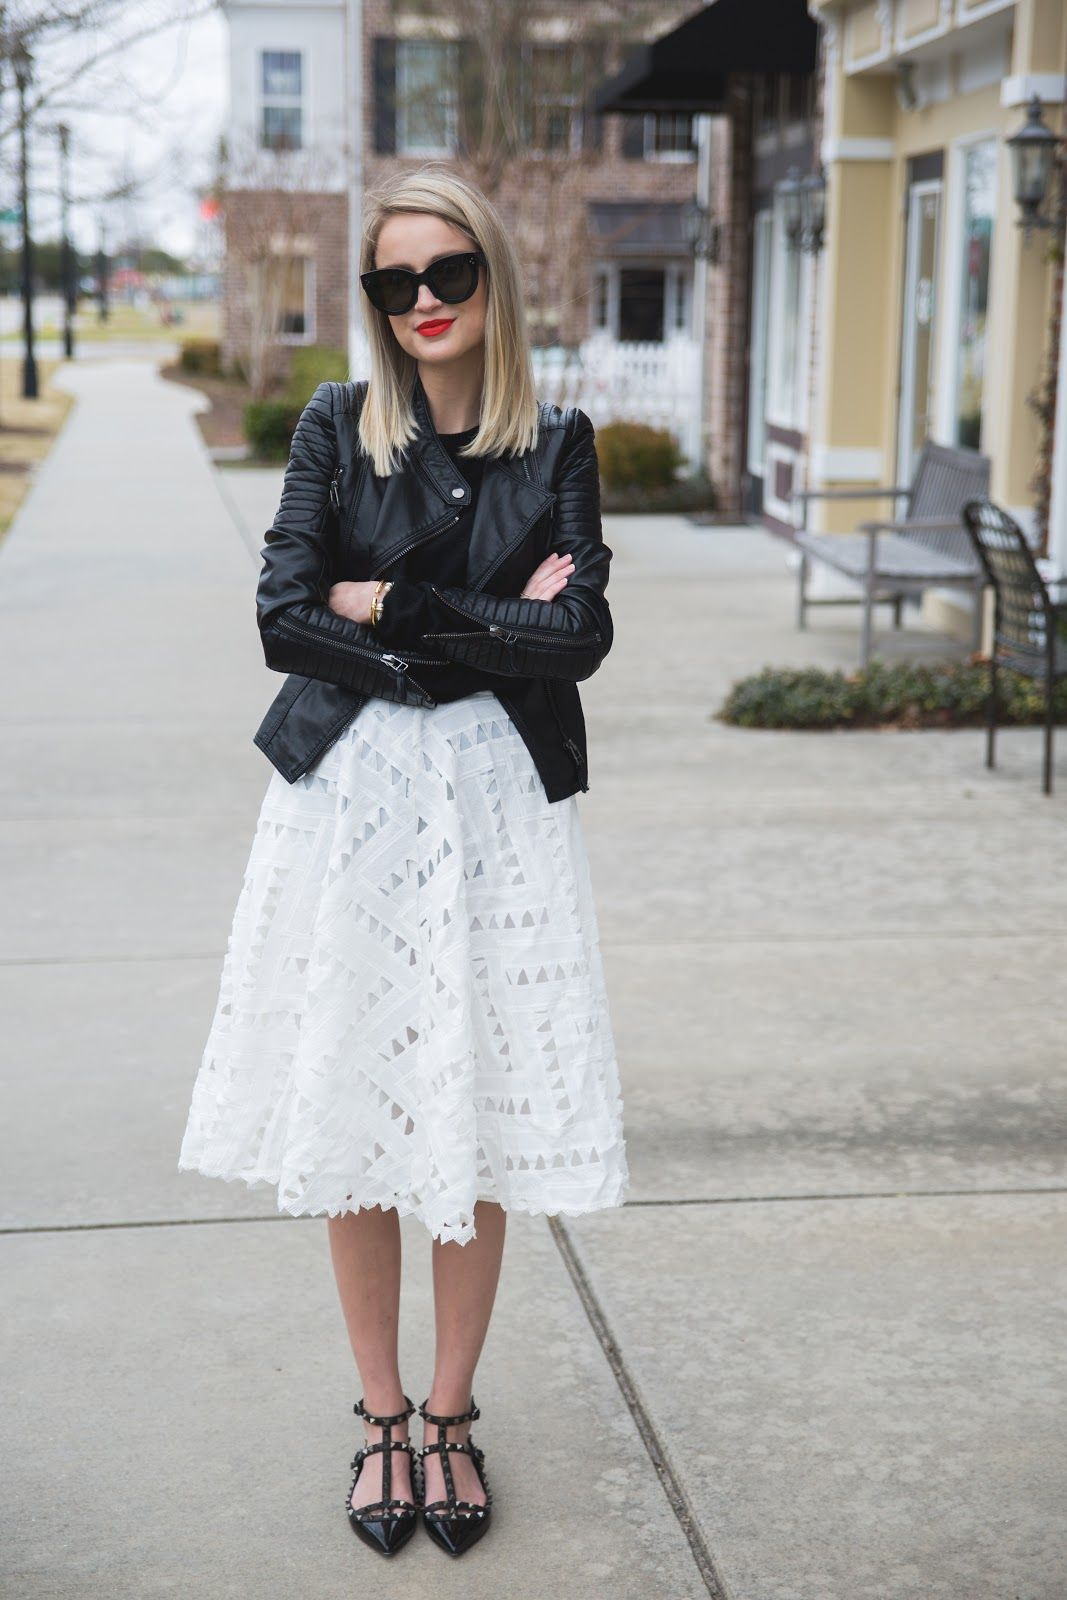 Lace midi skirt paired with black & leather